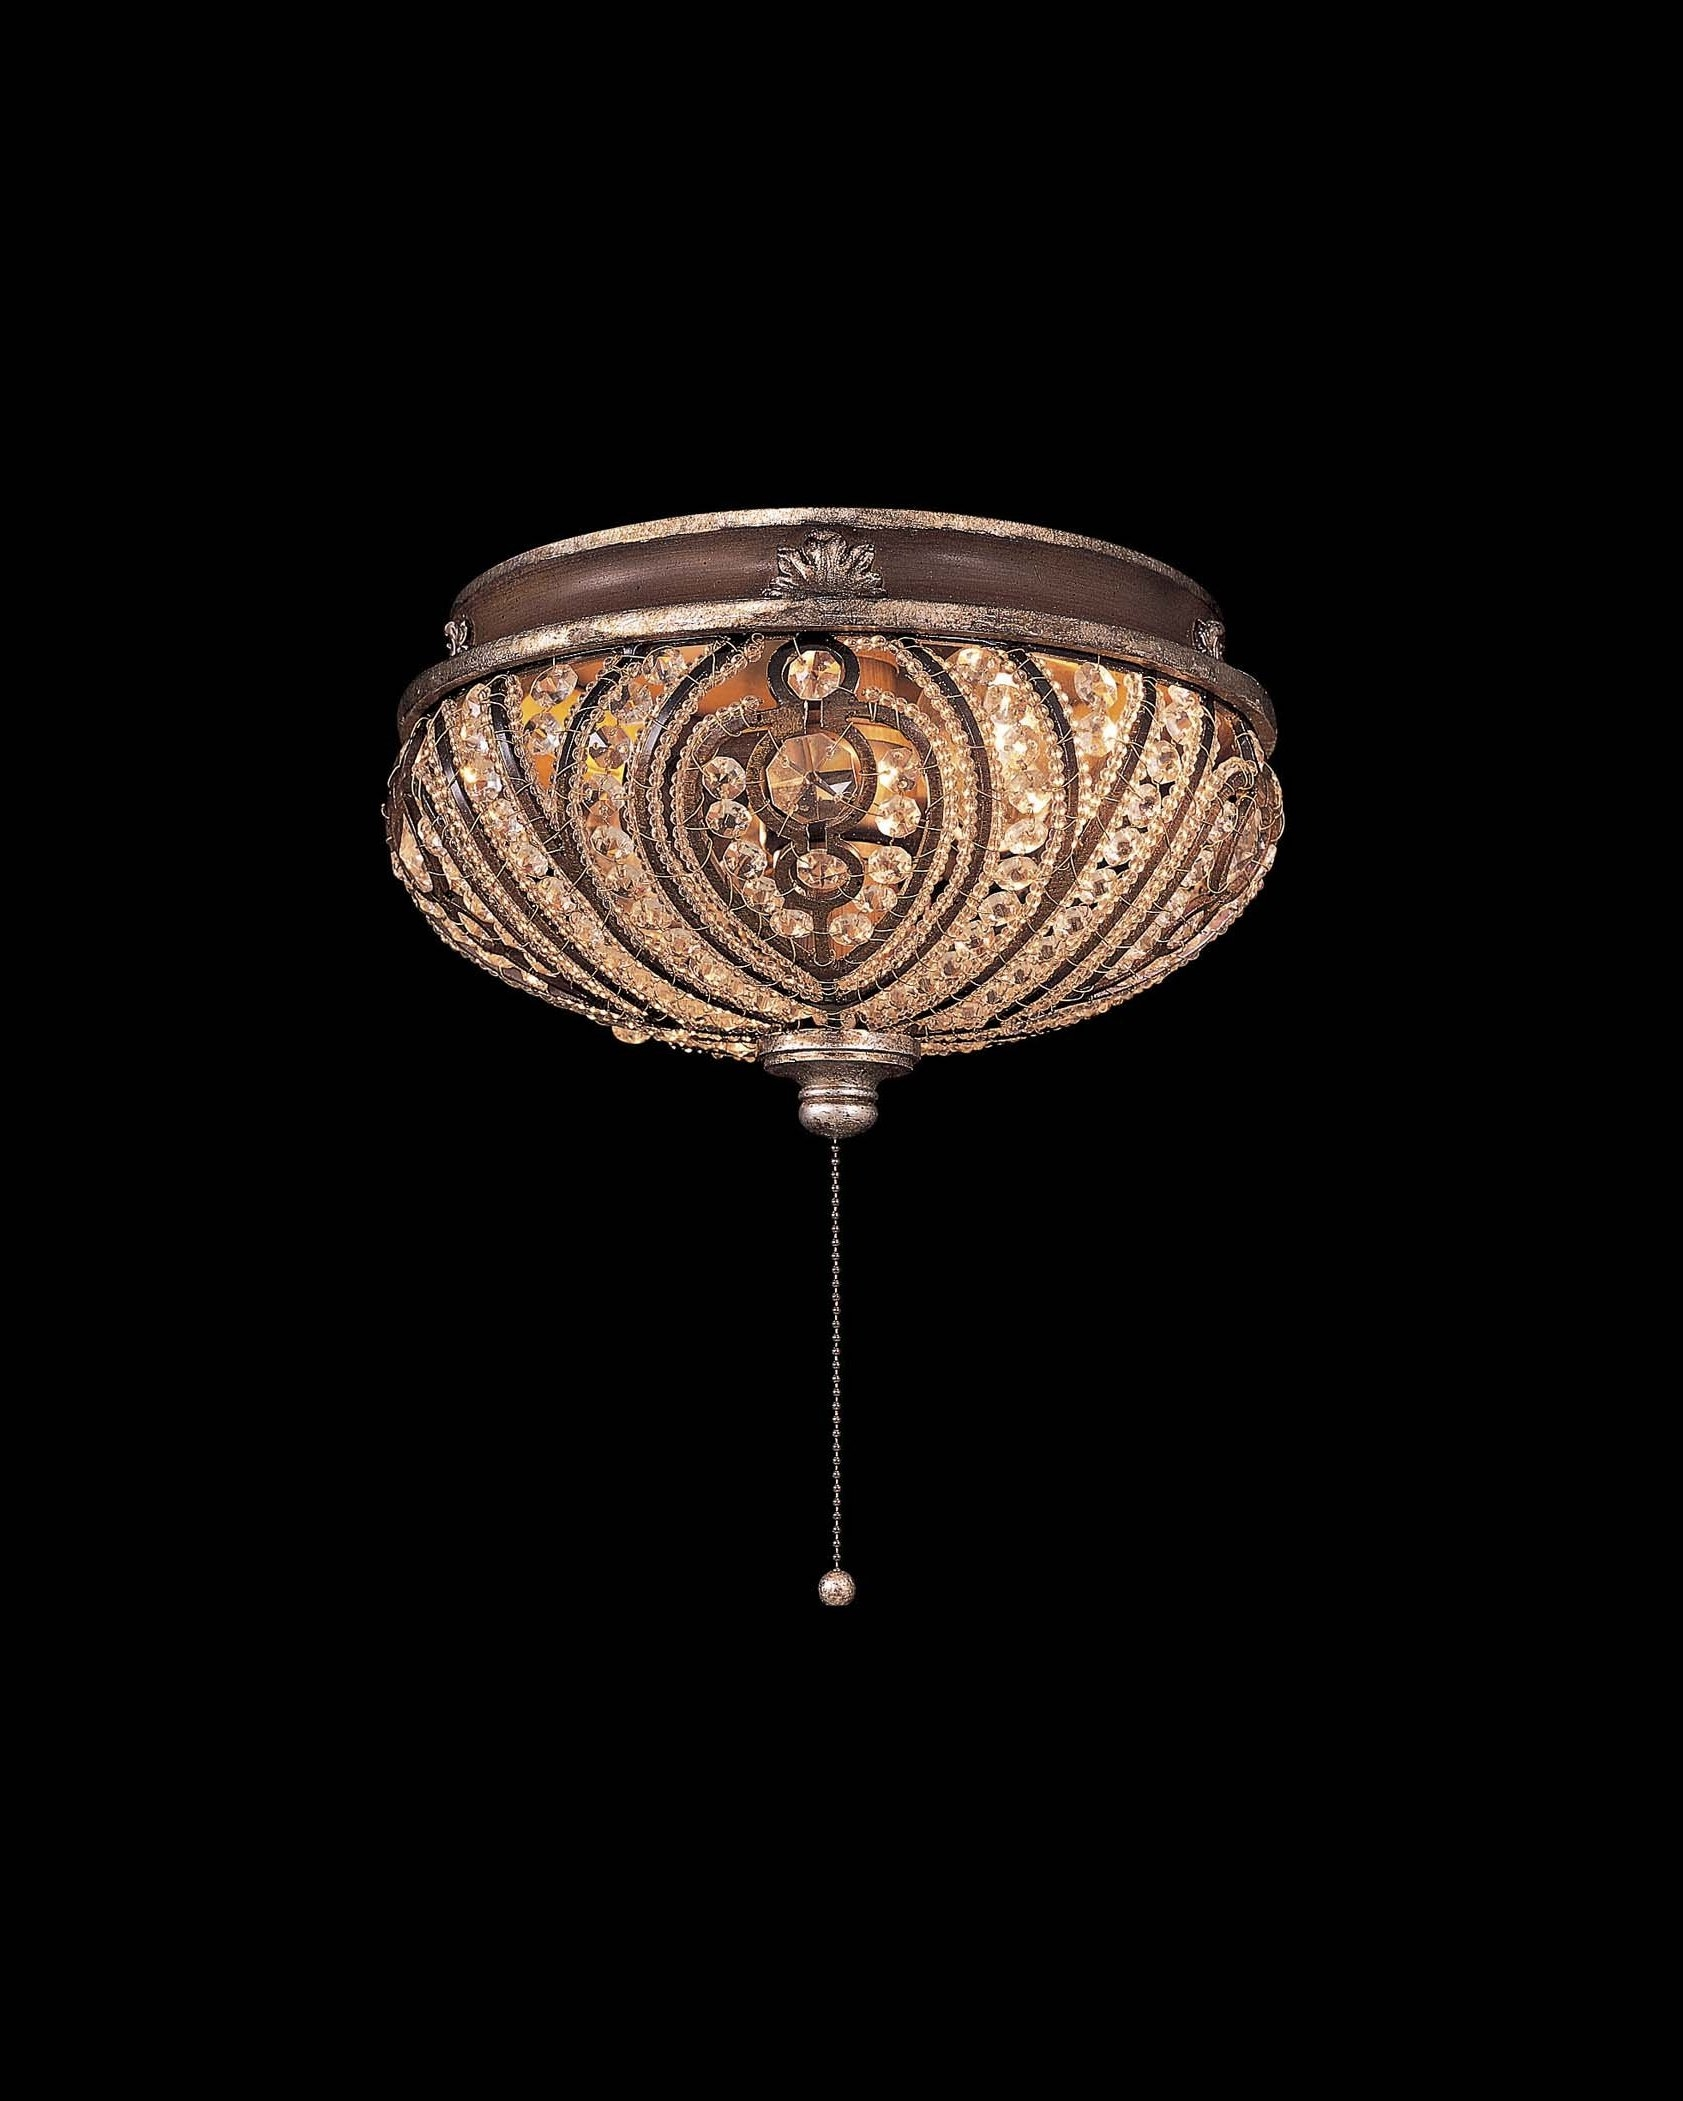 Ceiling Lighting With Pull Chain